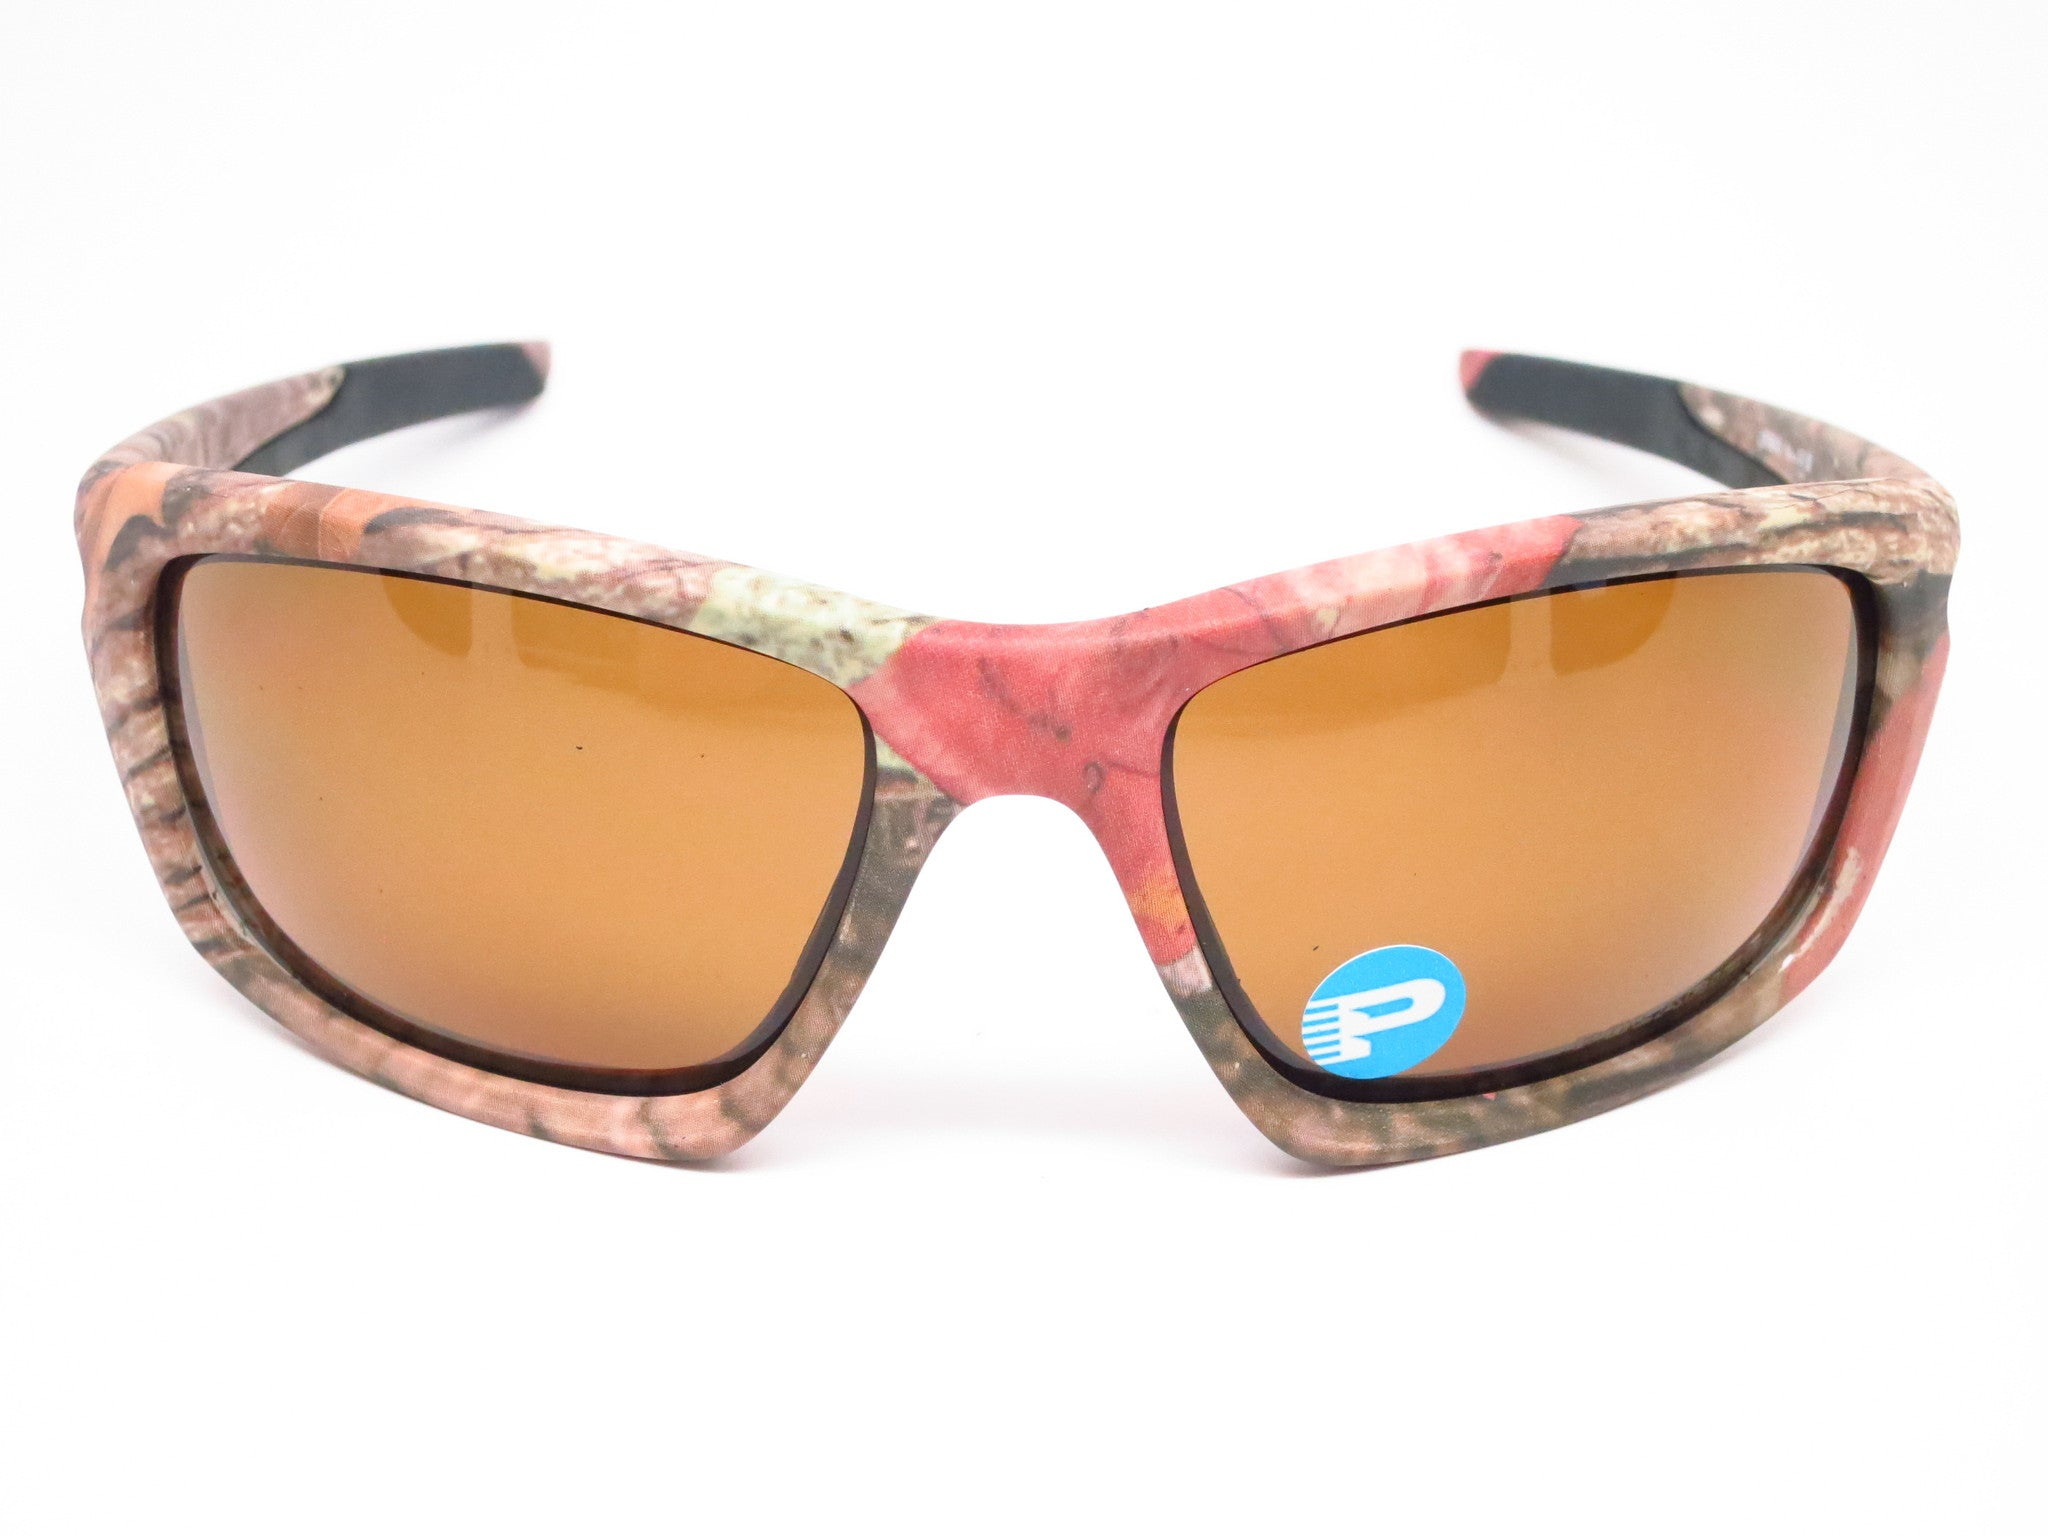 1053cda985 Oakley Sunglasses Fly Fishing « Heritage Malta